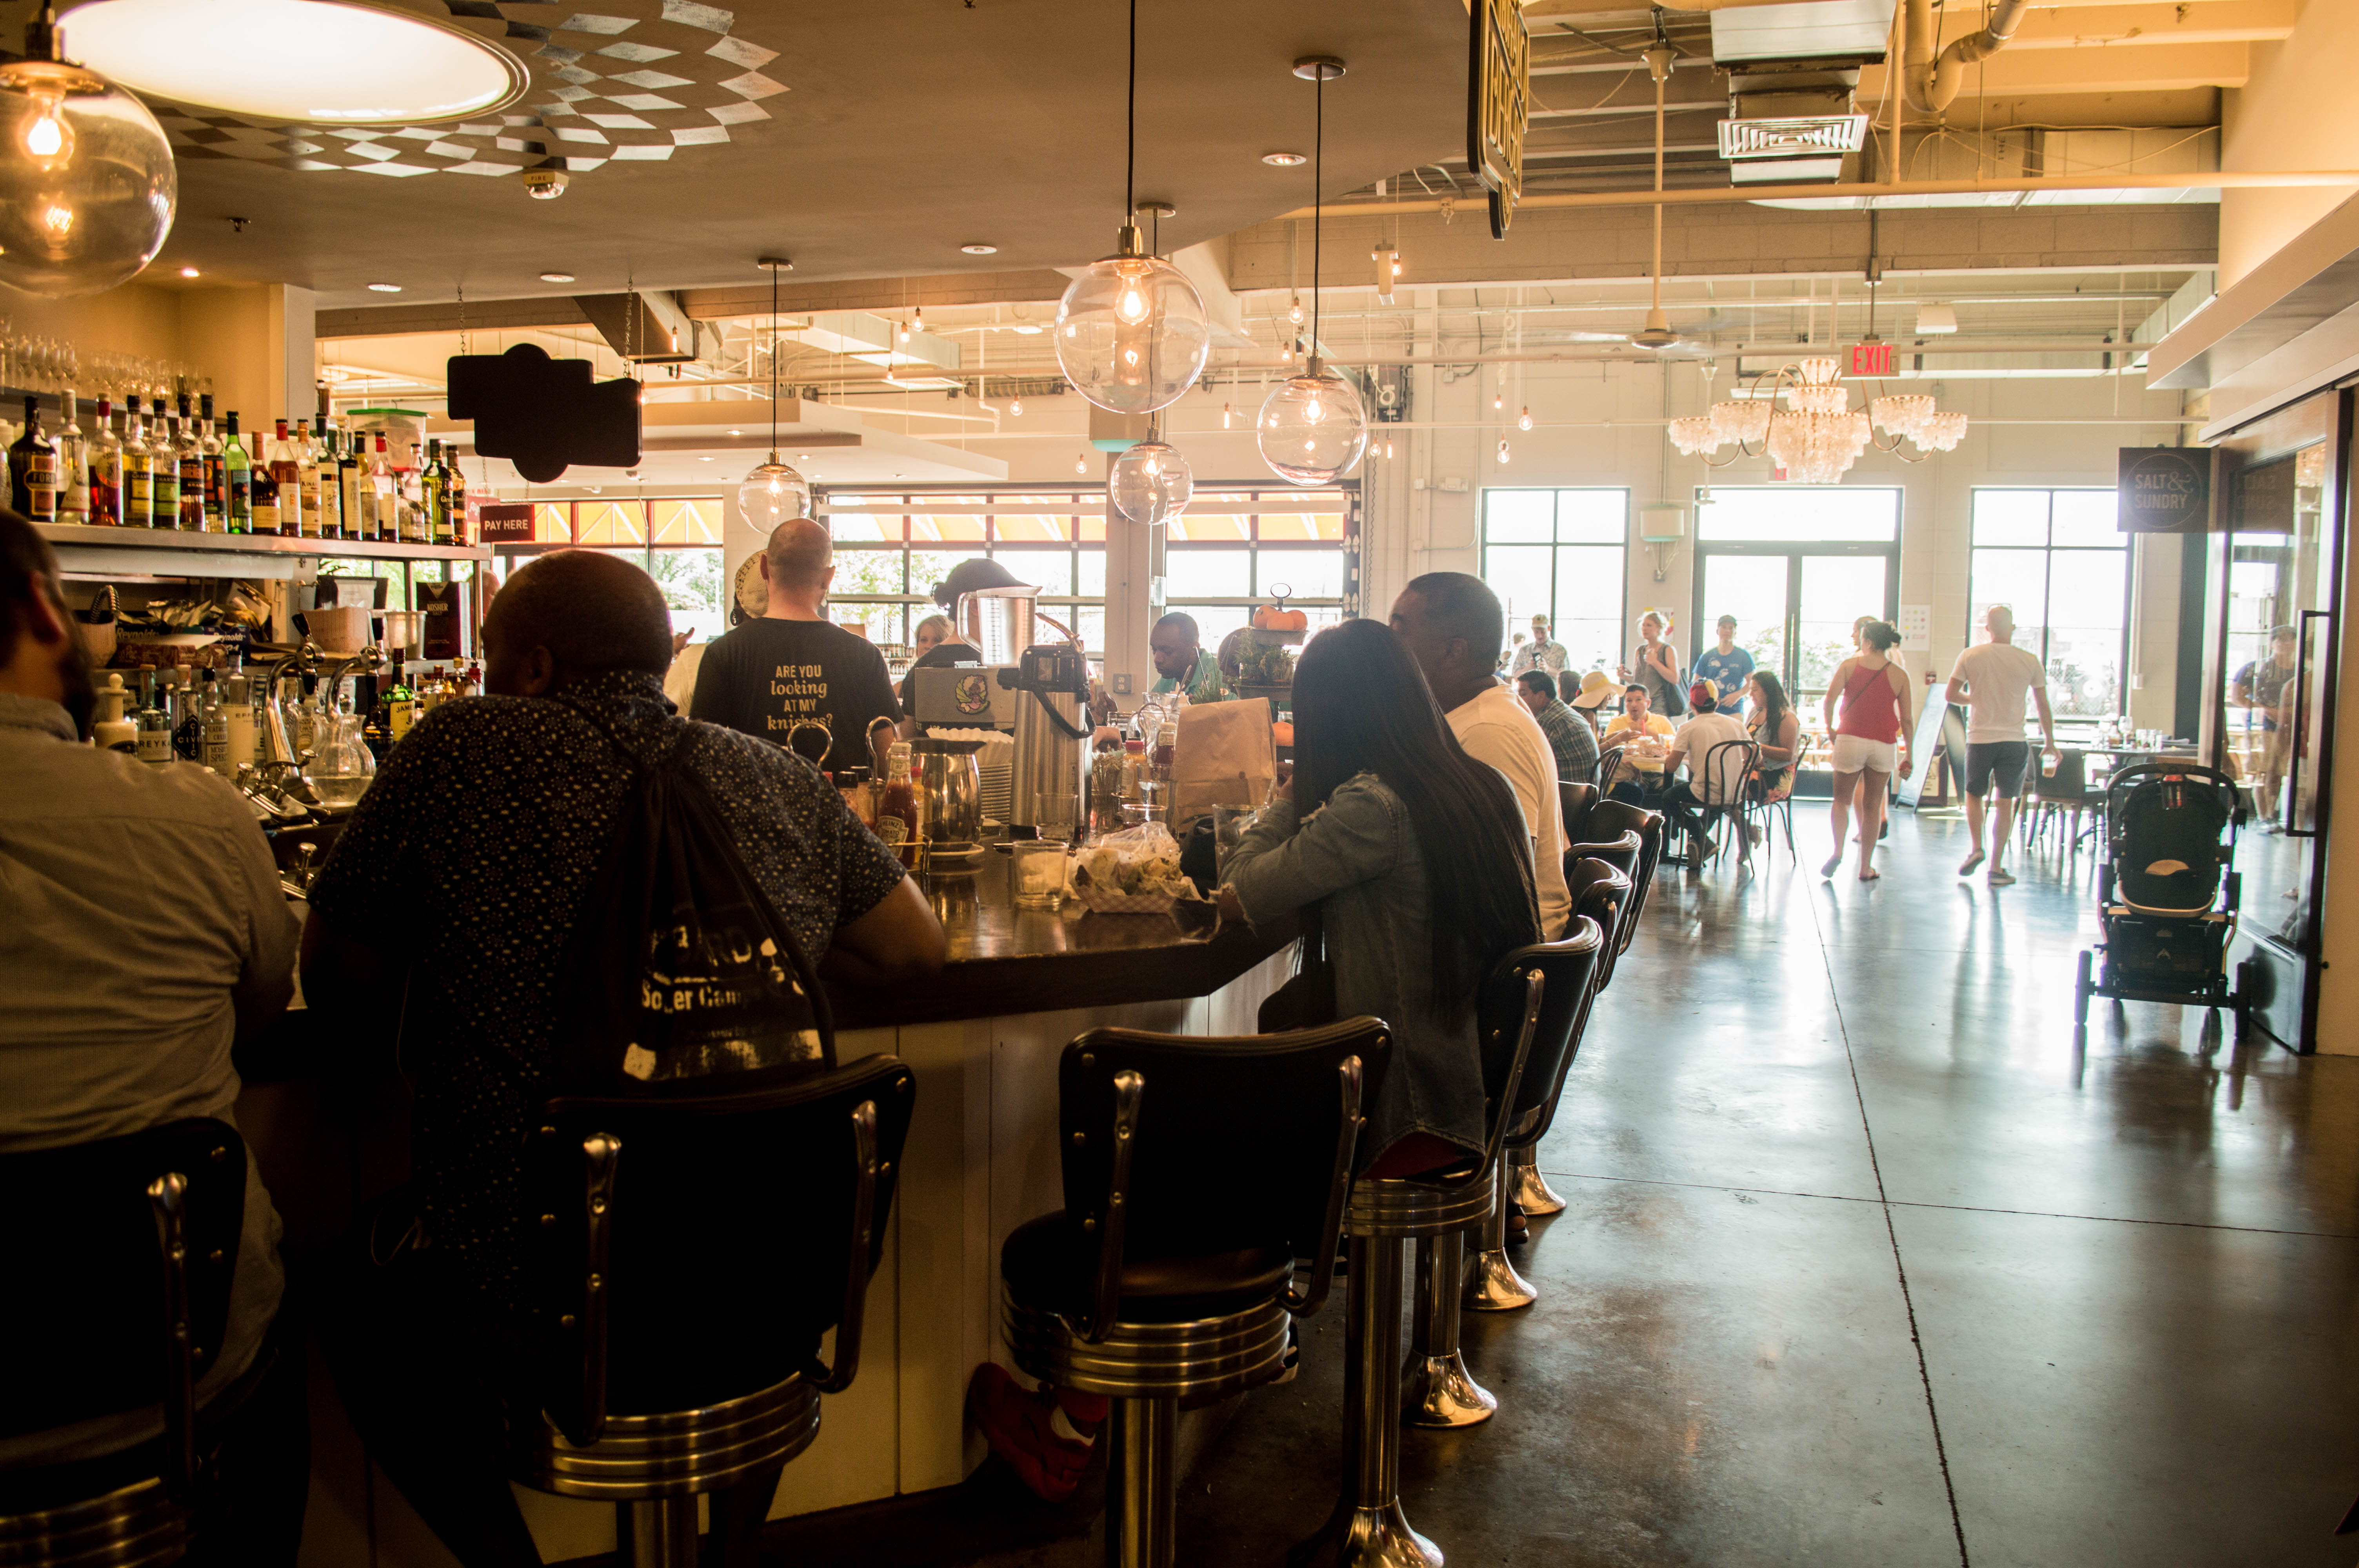 Move By Yourself: An Afternoon At Union Market